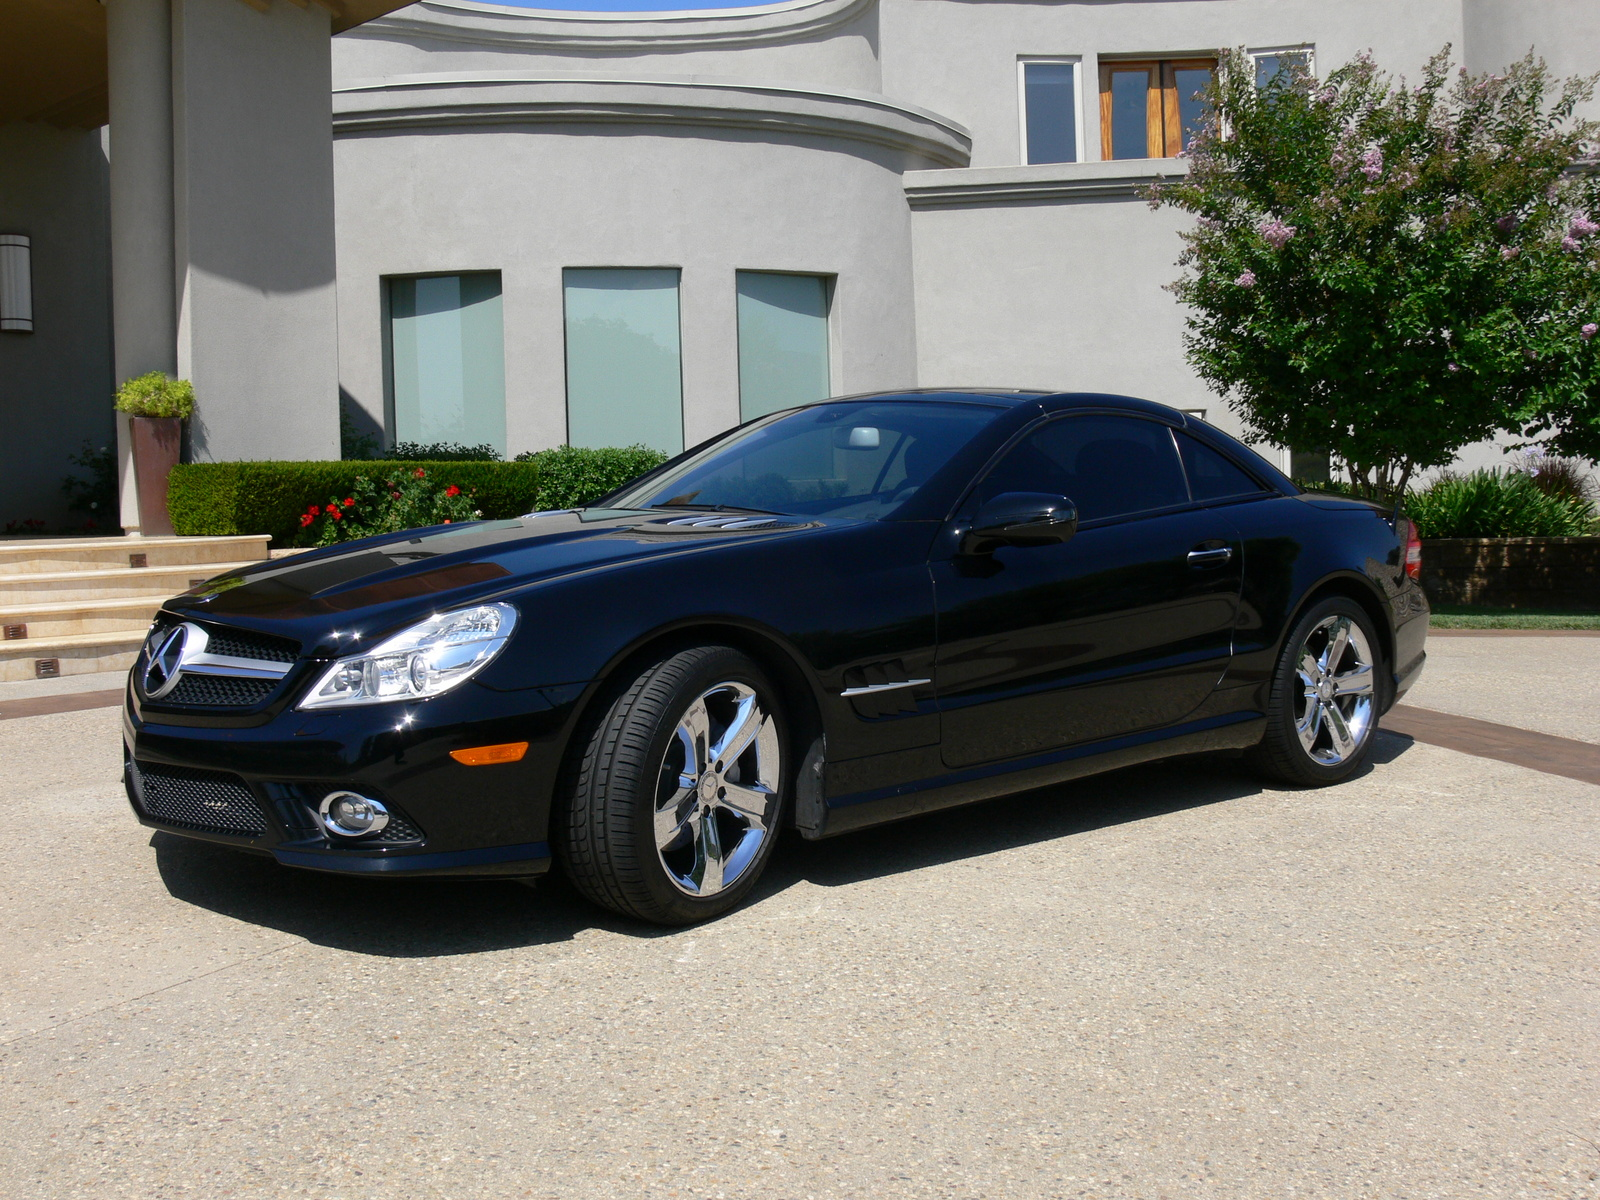 2009 mercedes benz sl class pictures cargurus. Black Bedroom Furniture Sets. Home Design Ideas